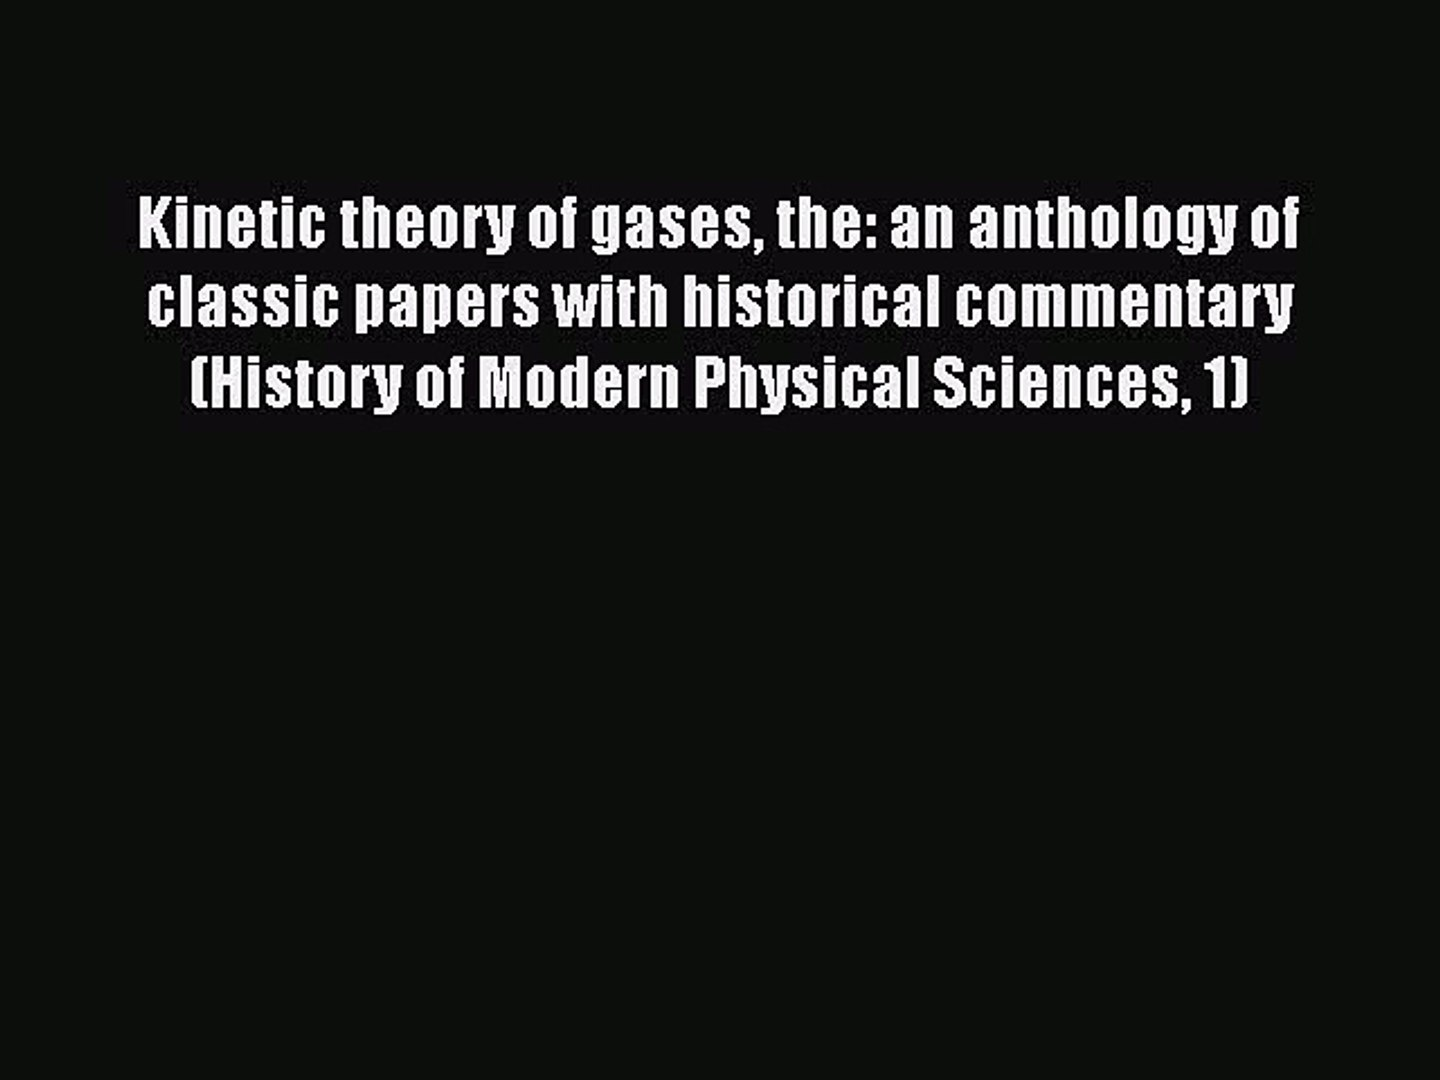 The Kinetic Theory of Gases : An Anthology of Classic Papers with Historical Commentary